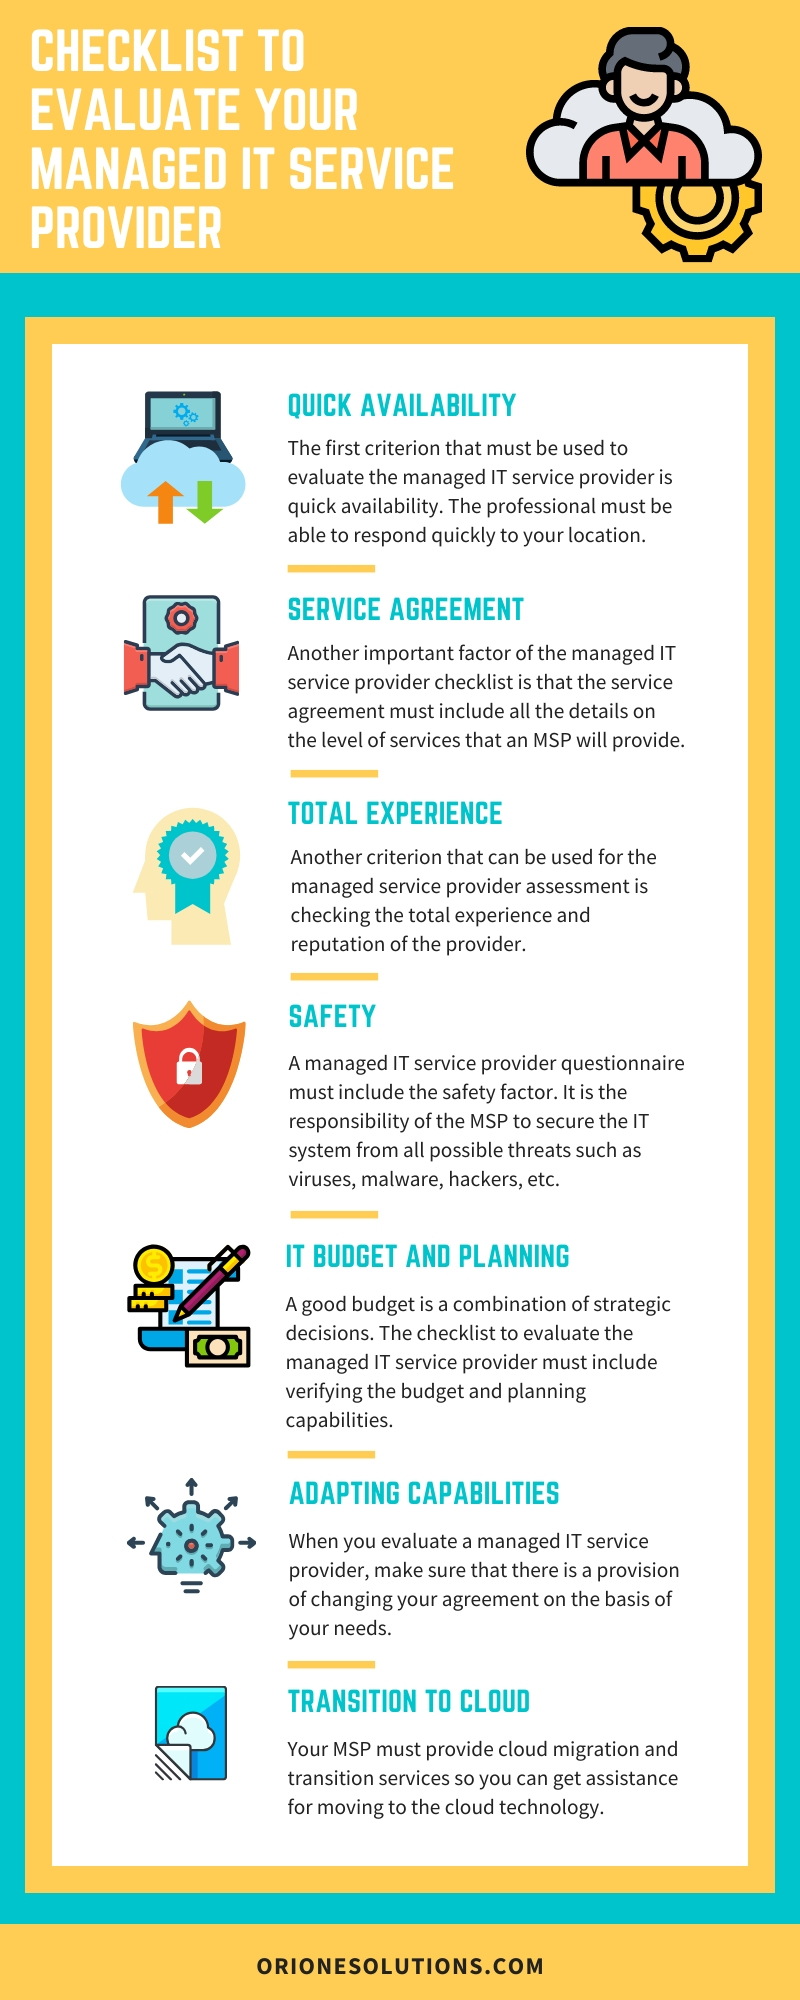 Checklist to evaluate Managed IT Service Provider